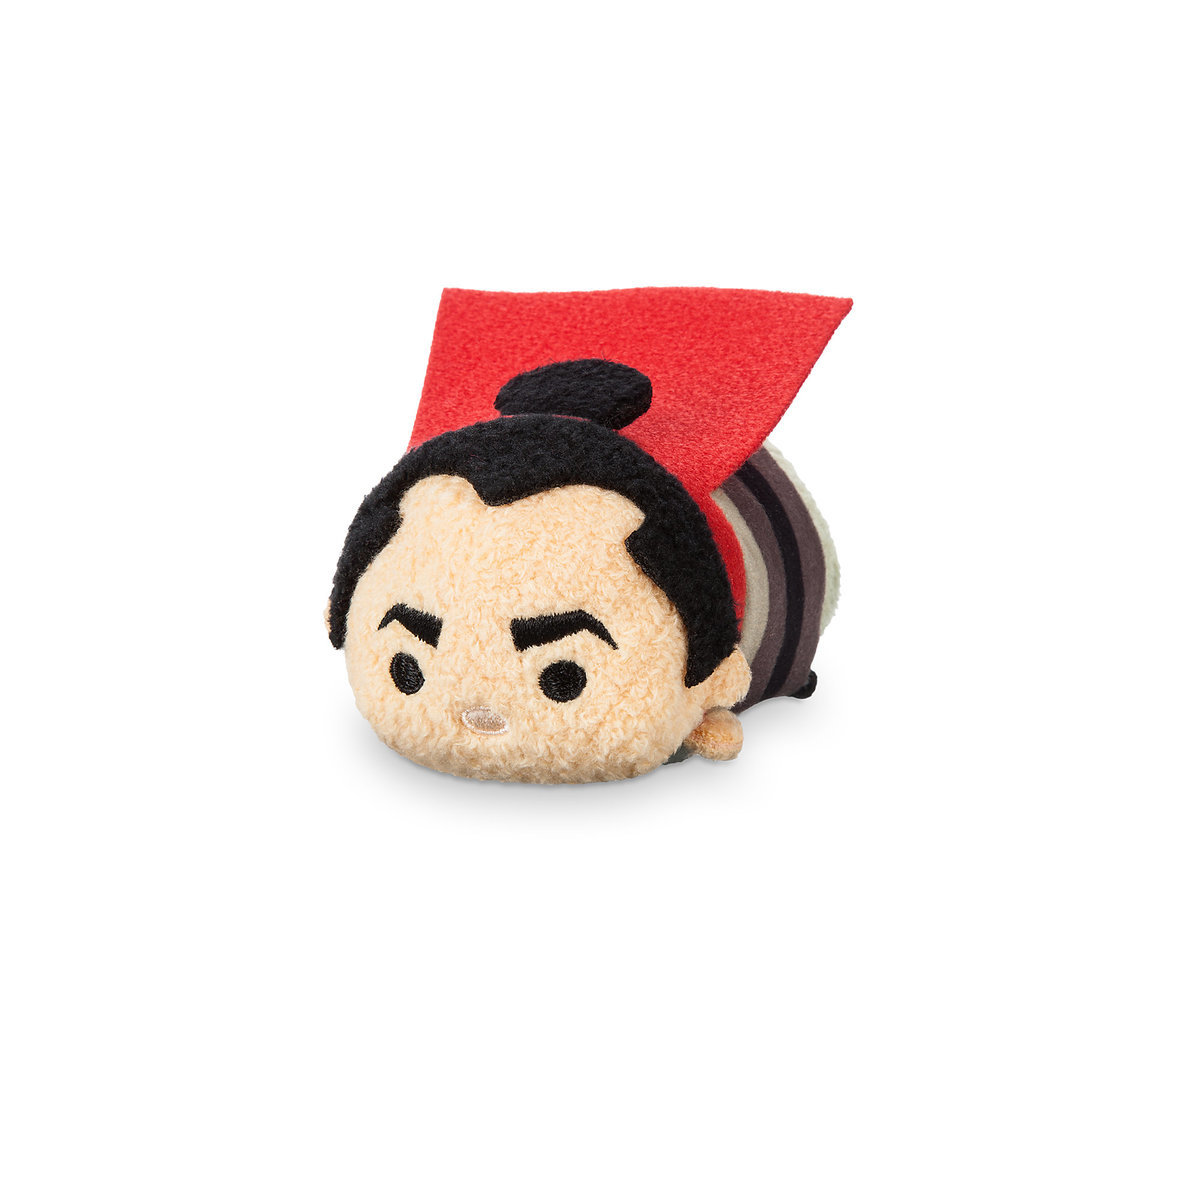 mulan tsum tsum collection out now